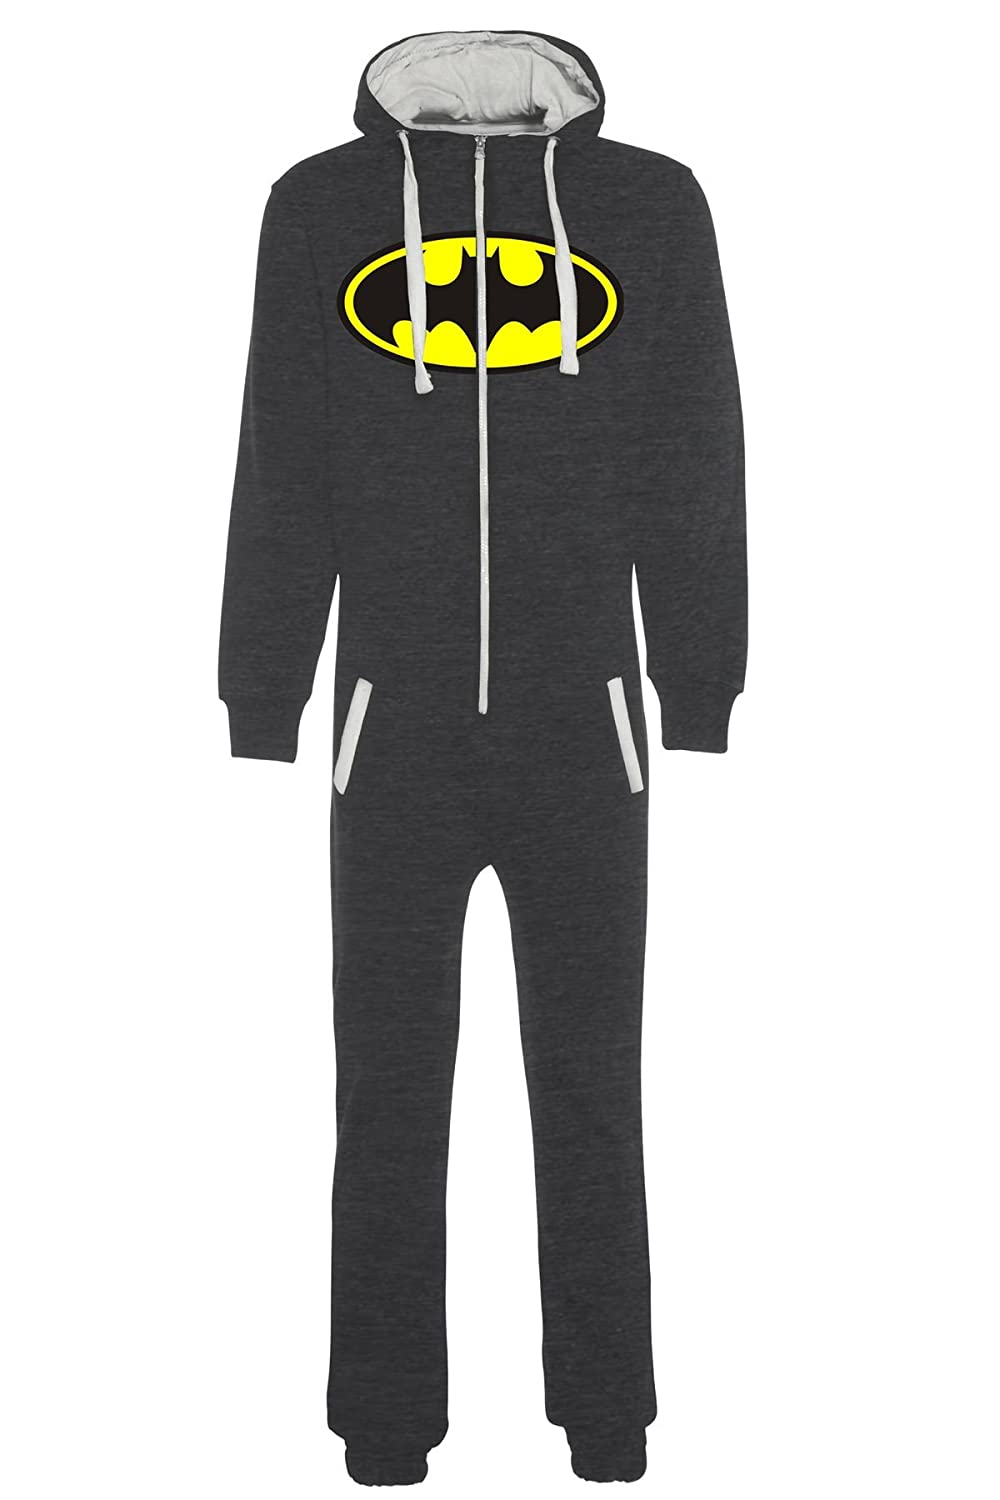 aejays Unisex Batman Printed Onsie Color Charcoal Size M PAK MAN LTD